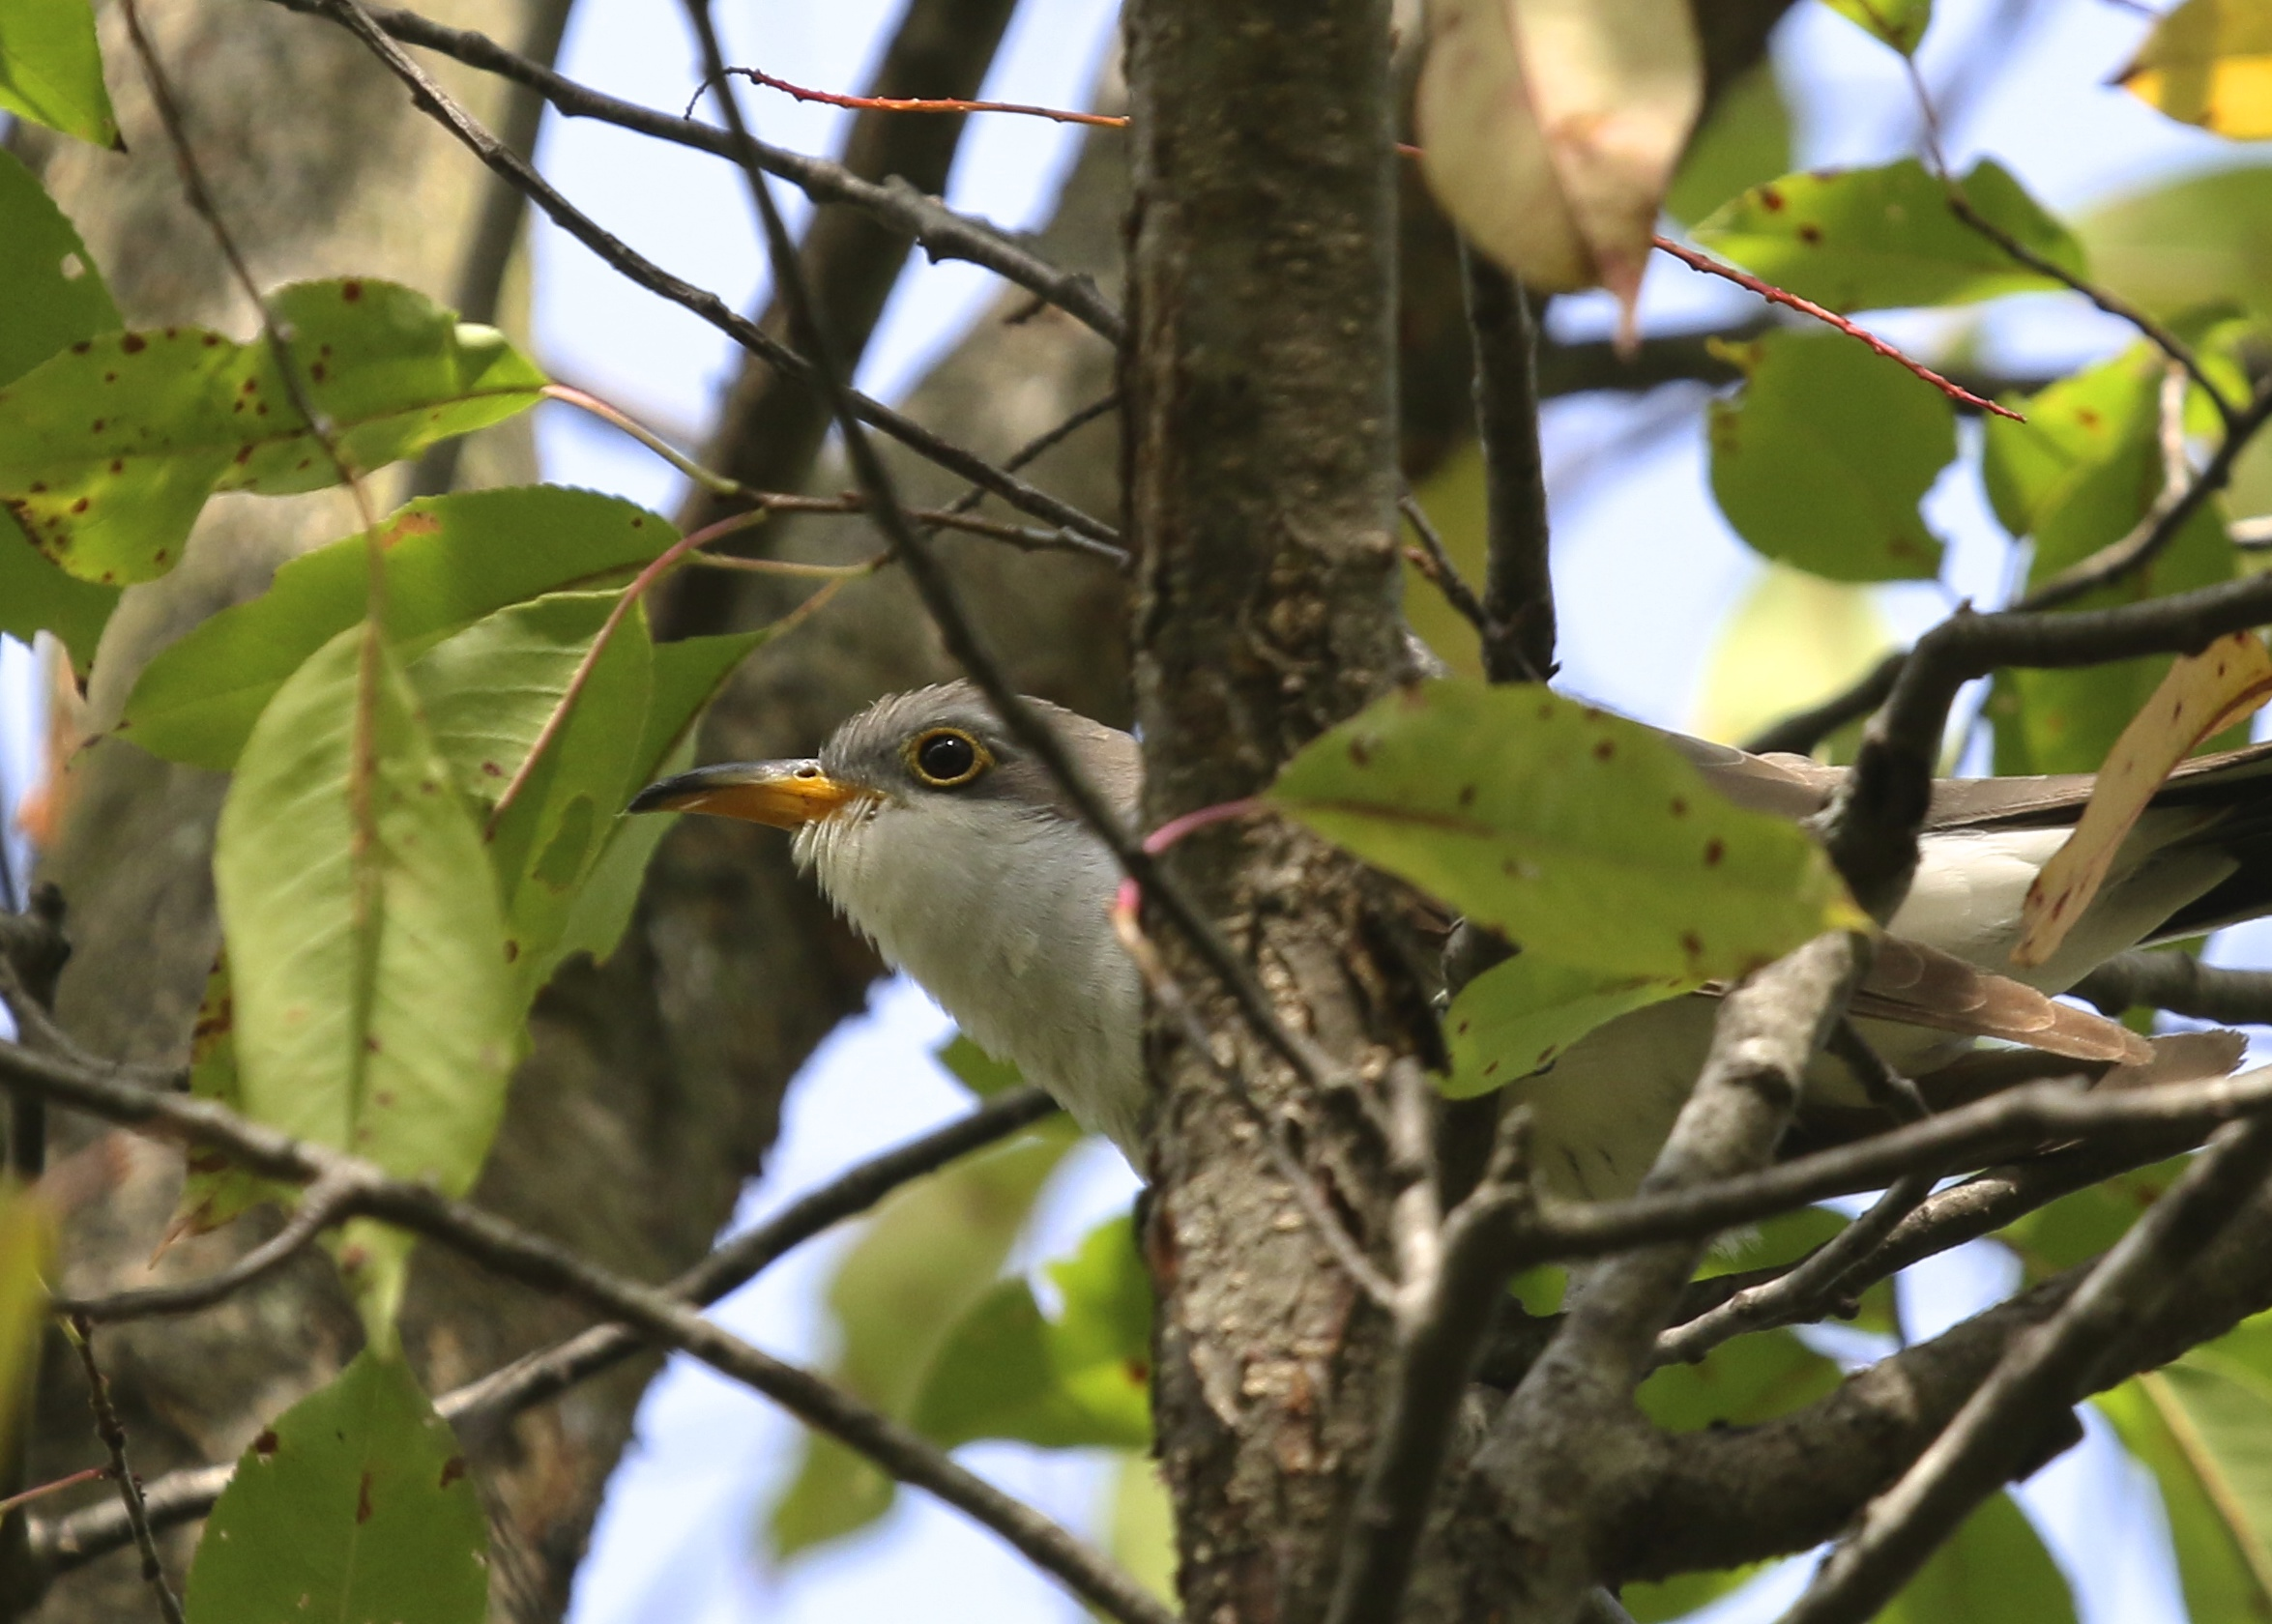 This Yellow-billed Cuckoo made my morning. 6 1/2 Station Road Sanctuary, 9/21/14.